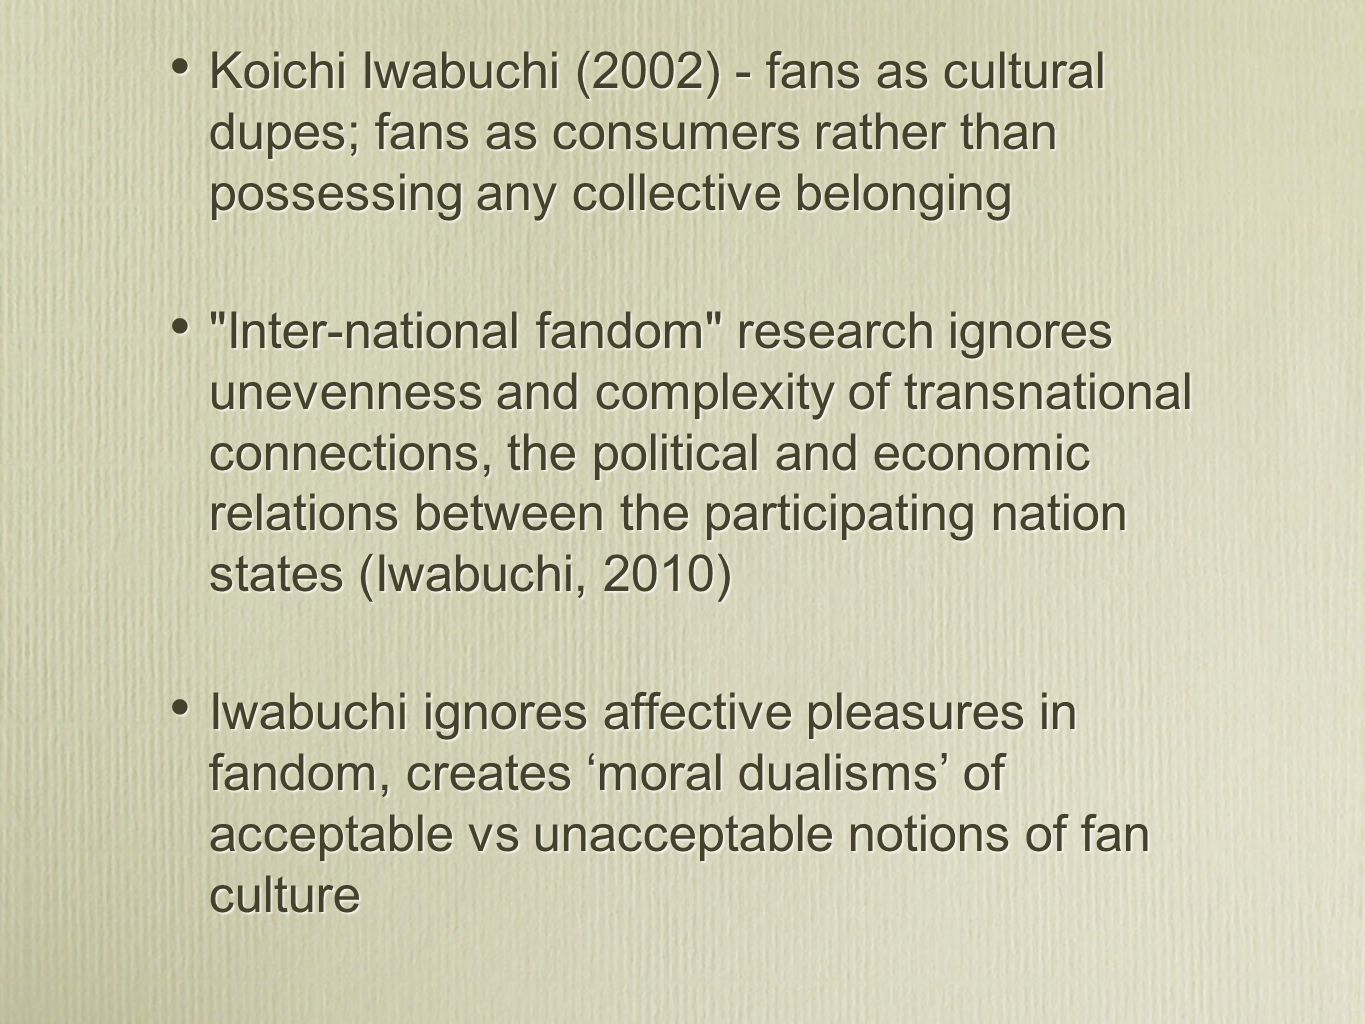 Koichi Iwabuchi (2002) - fans as cultural dupes; fans as consumers rather than possessing any collective belonging Inter-national fandom research ignores unevenness and complexity of transnational connections, the political and economic relations between the participating nation states (Iwabuchi, 2010) Iwabuchi ignores affective pleasures in fandom, creates moral dualisms of acceptable vs unacceptable notions of fan culture Koichi Iwabuchi (2002) - fans as cultural dupes; fans as consumers rather than possessing any collective belonging Inter-national fandom research ignores unevenness and complexity of transnational connections, the political and economic relations between the participating nation states (Iwabuchi, 2010) Iwabuchi ignores affective pleasures in fandom, creates moral dualisms of acceptable vs unacceptable notions of fan culture